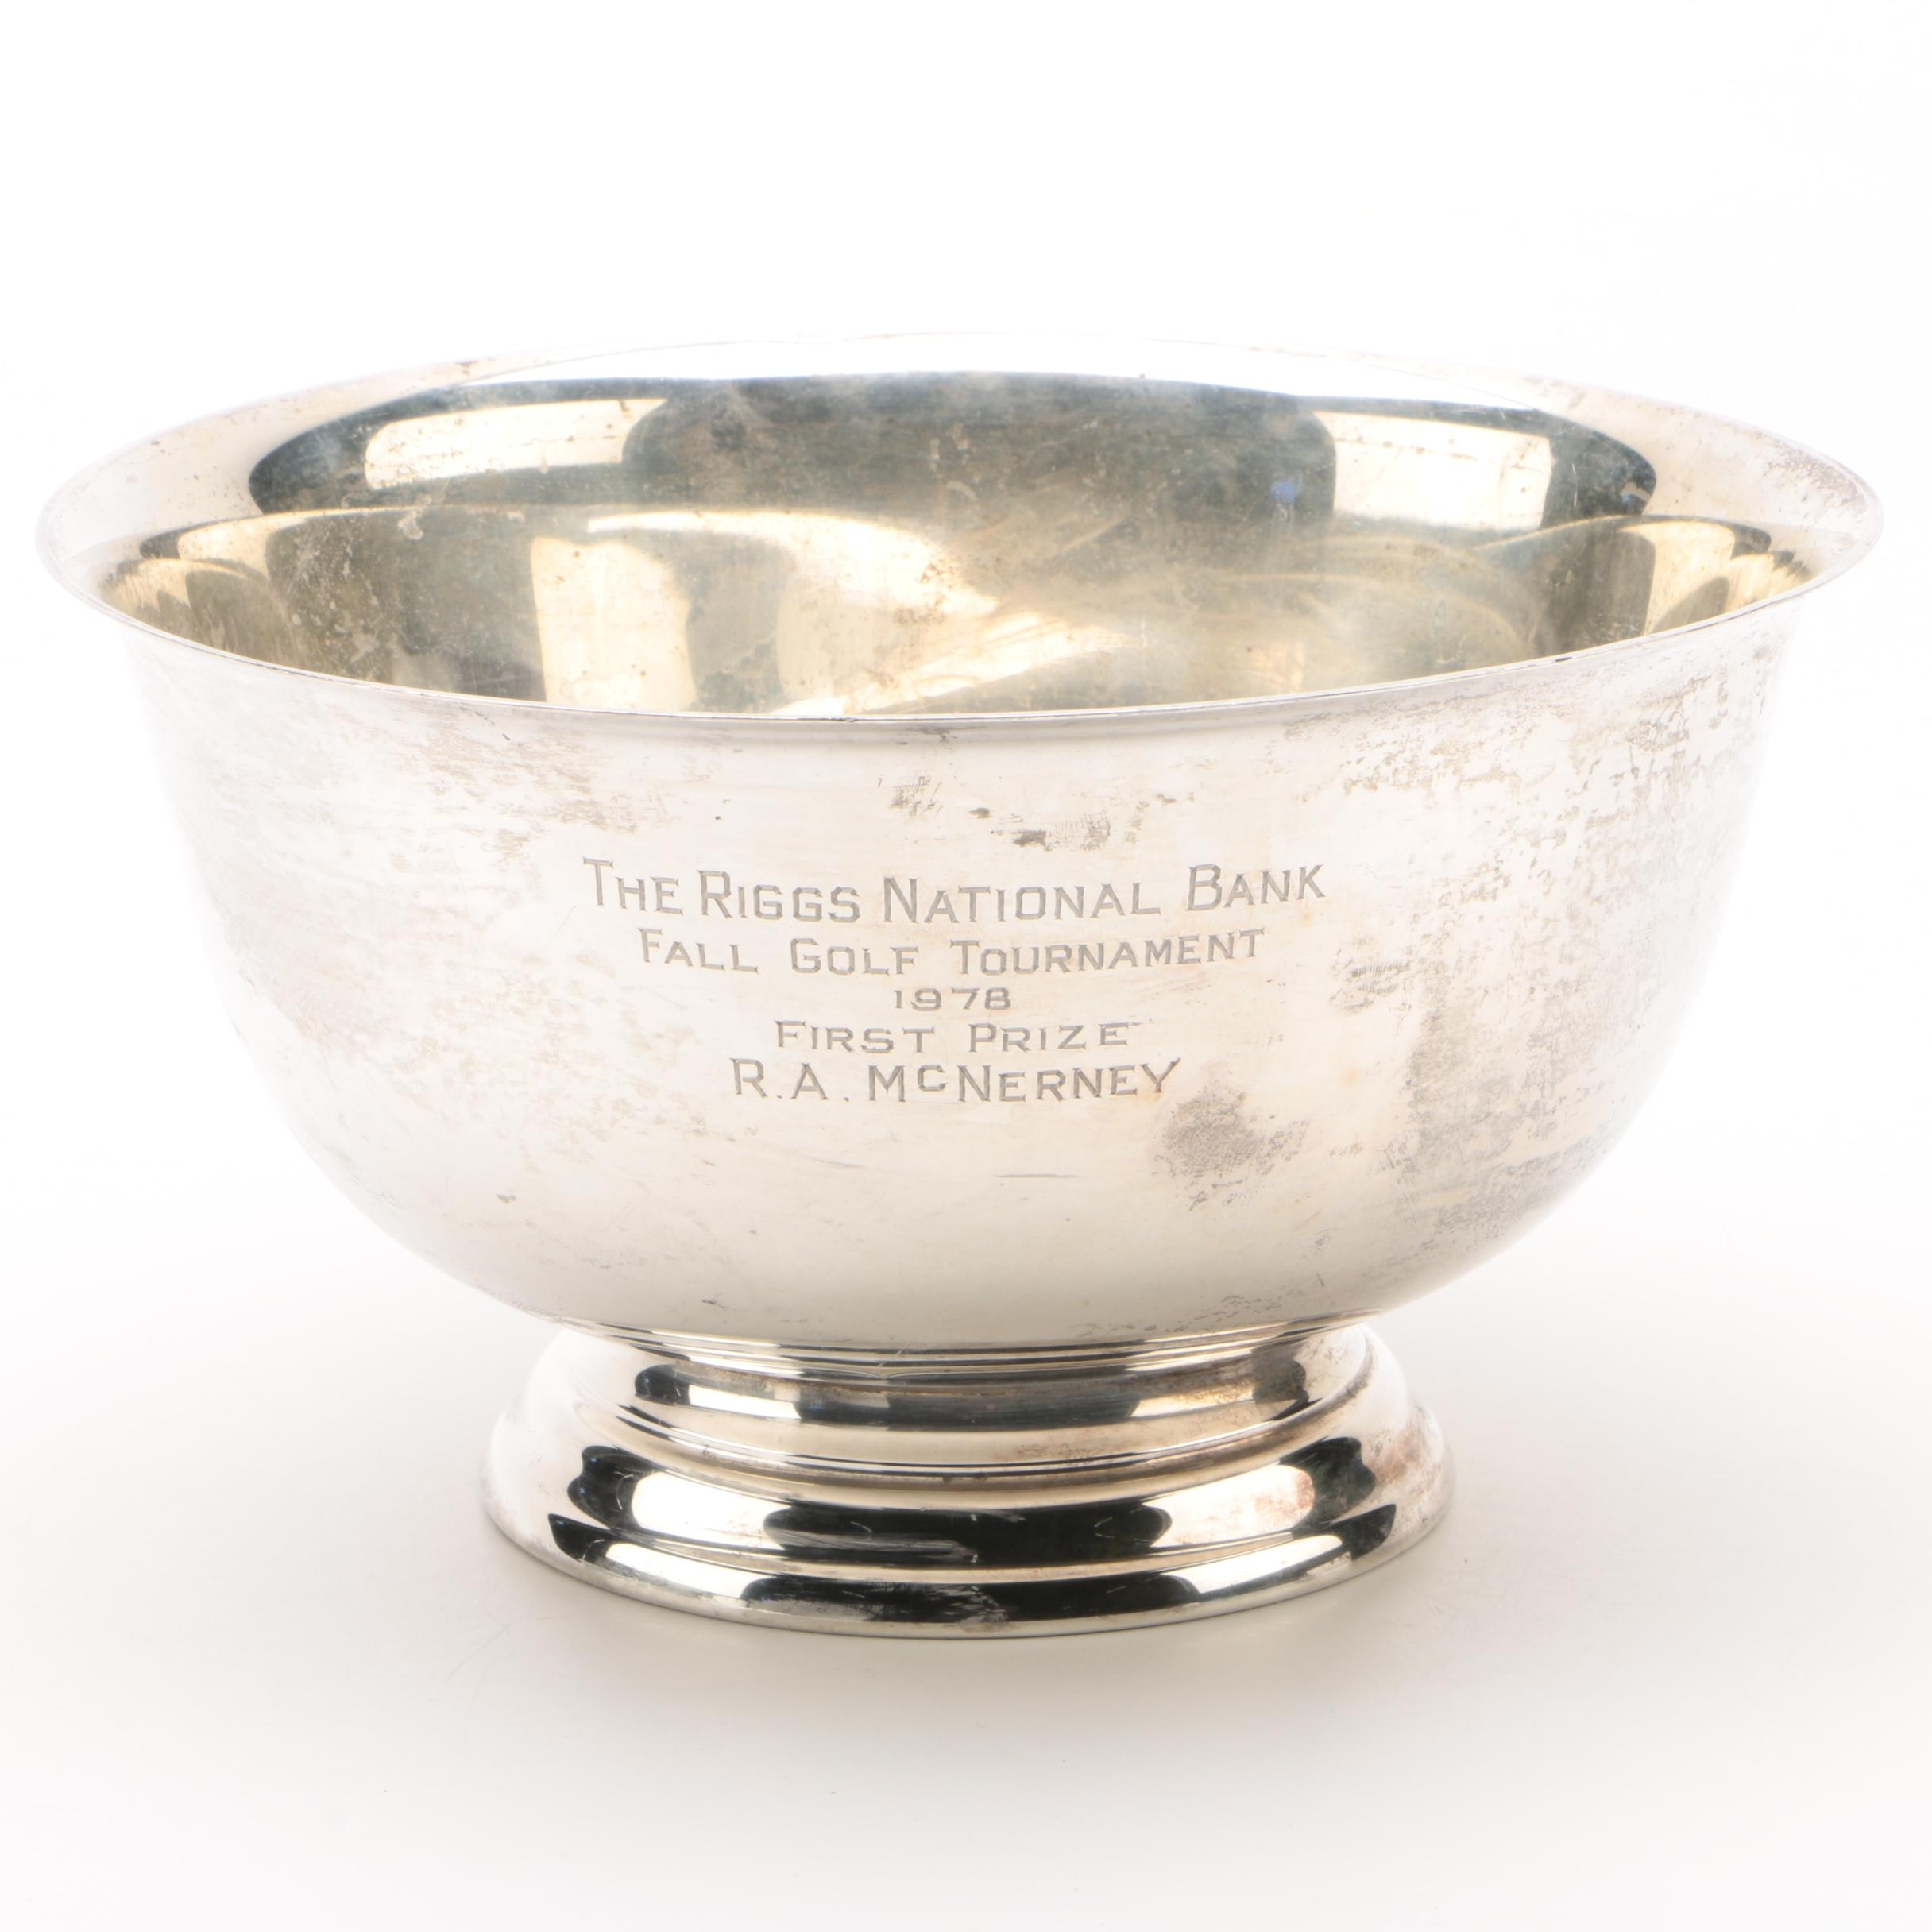 Gorham Sterling Reproduction Paul Revere Bowl, Engraved 1978